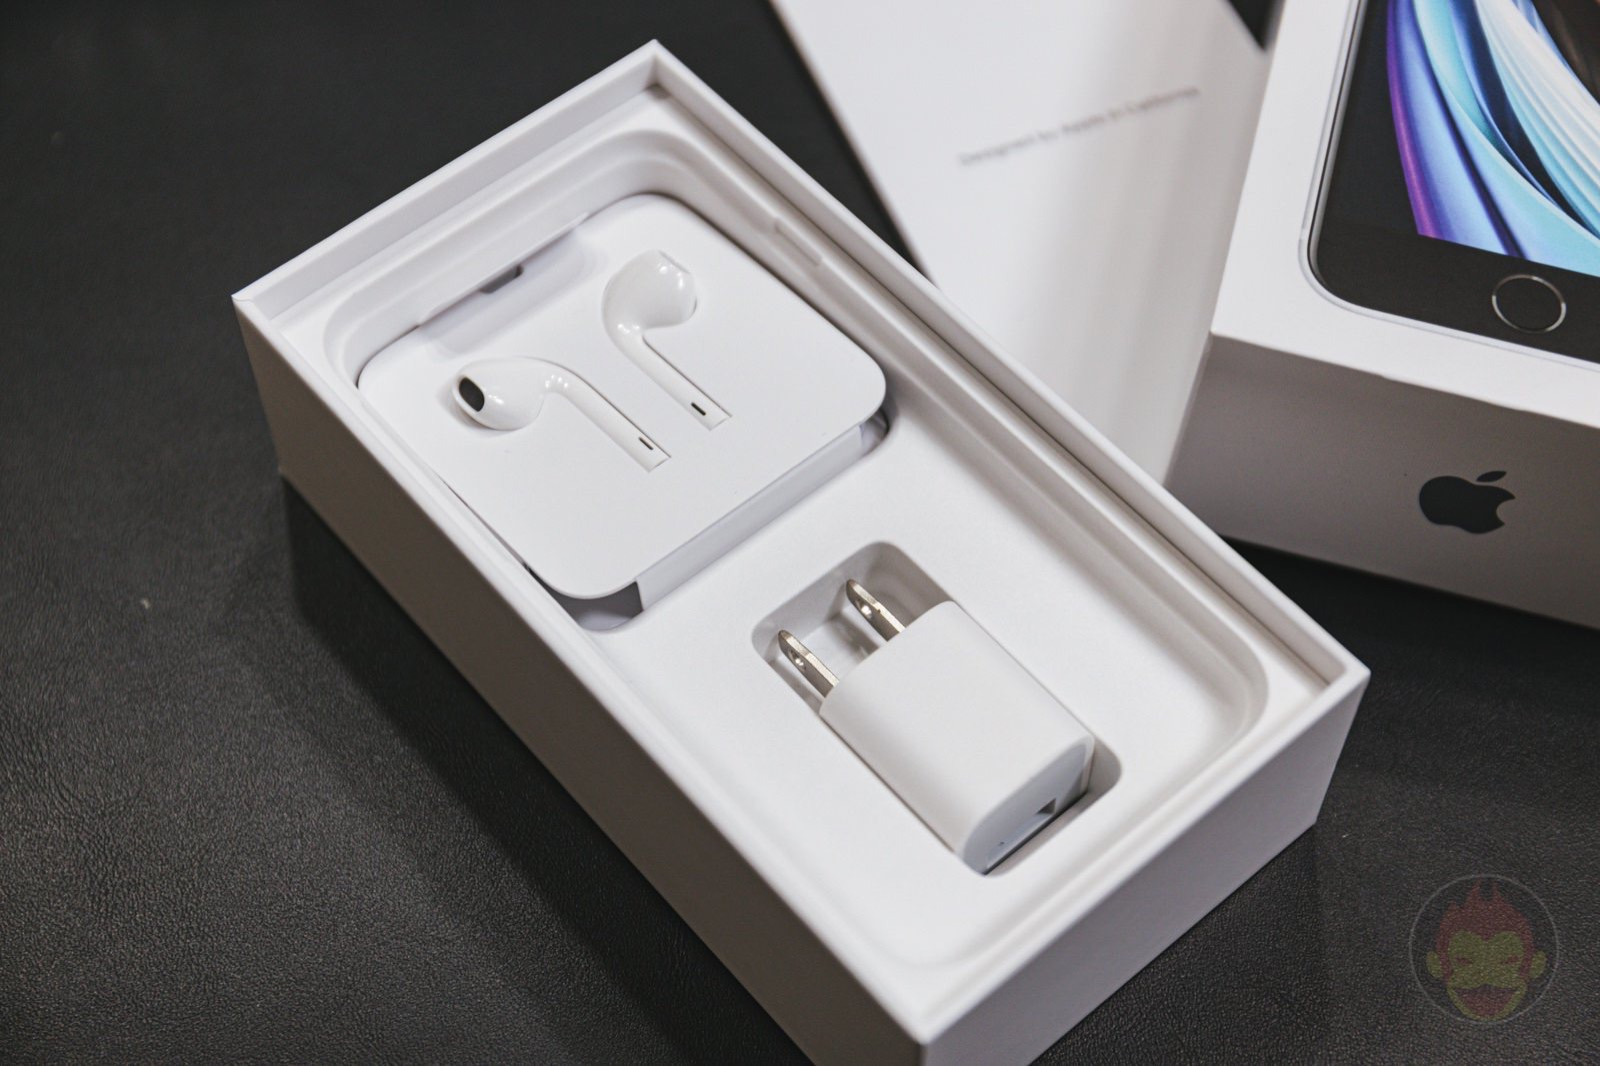 Iphone package box earphones charger 03